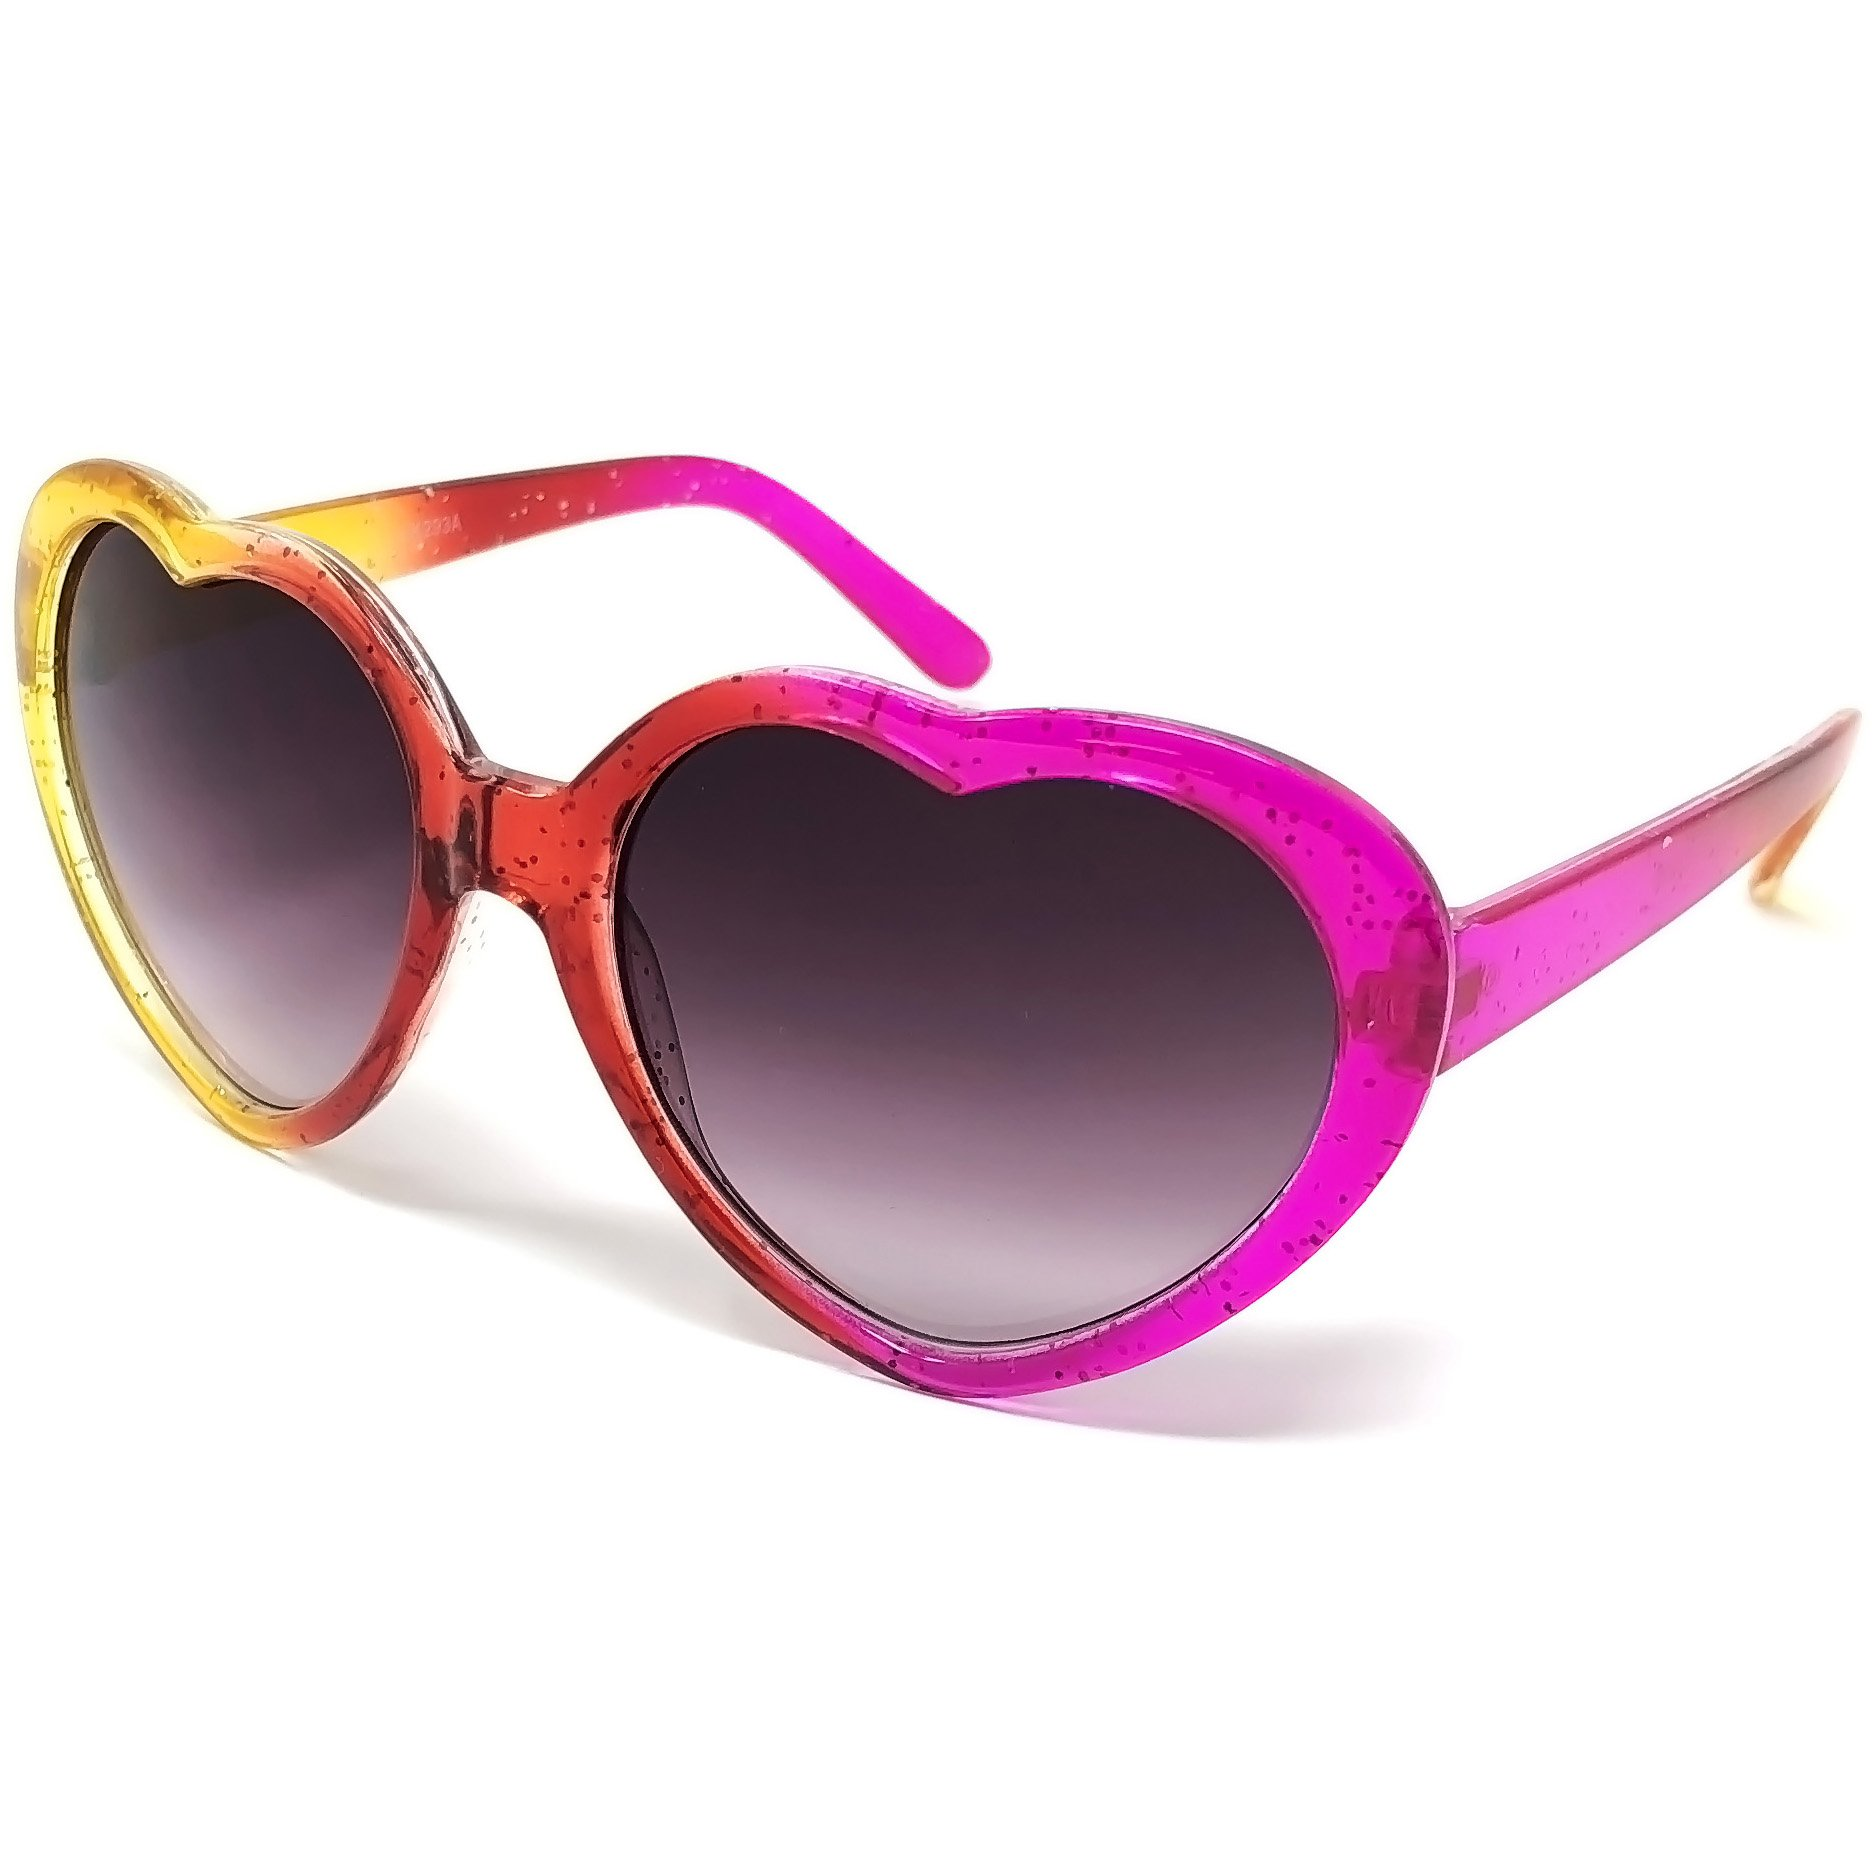 Loose Leaf Eyewear Kids Girls Glitter Heart-Shaped Multicolor Sunglasses with Llama Print Case